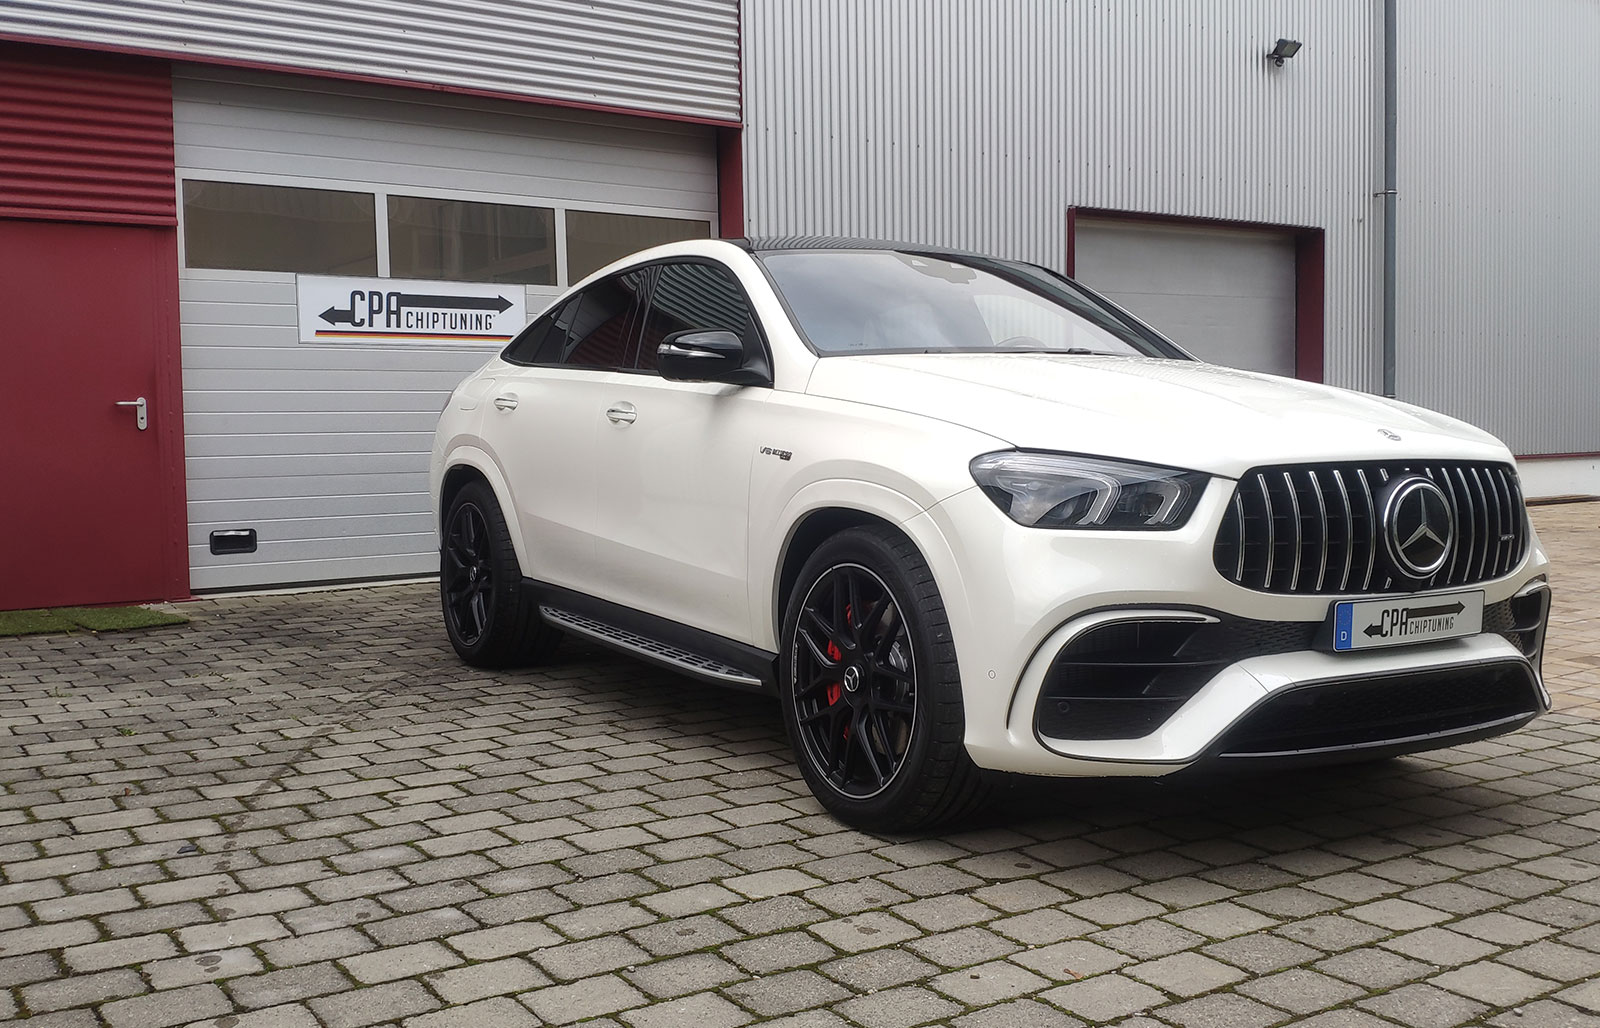 Mercedes GLE-Class (C167) GLE63 S AMG 4MATIC + Coupe Chiptuning